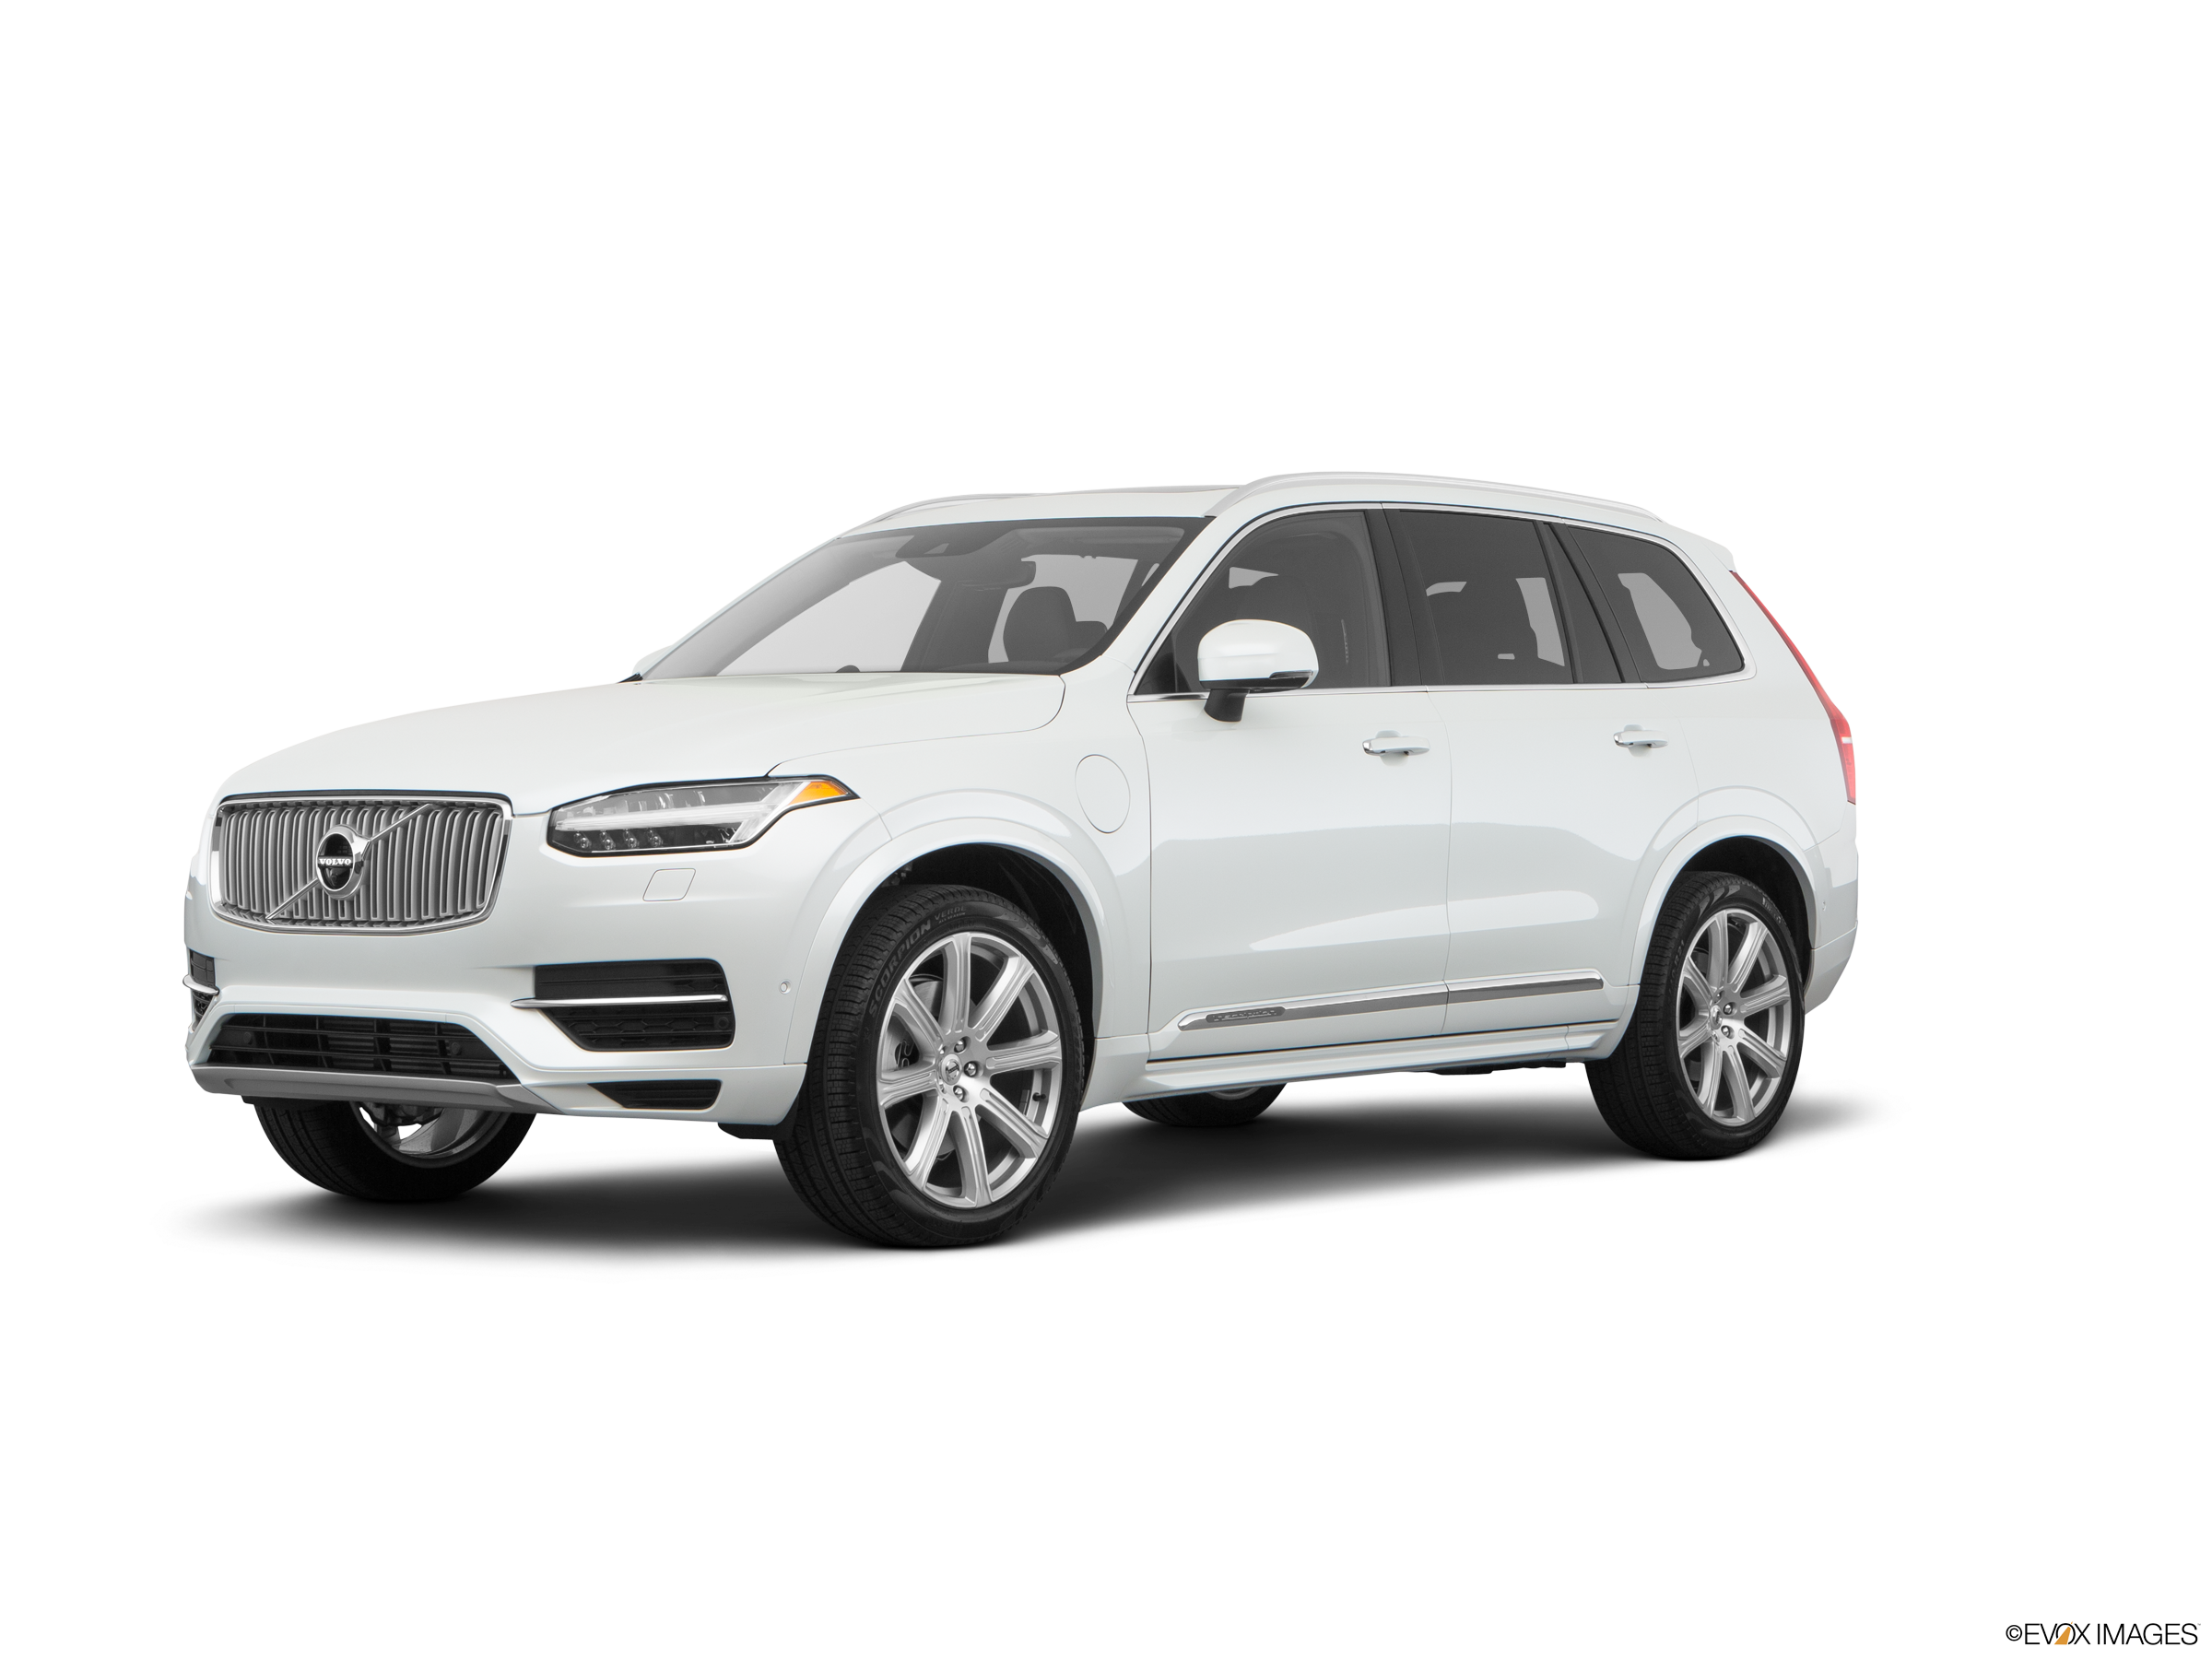 Top Expert Rated Electric Cars of 2018 - 2018 Volvo XC90